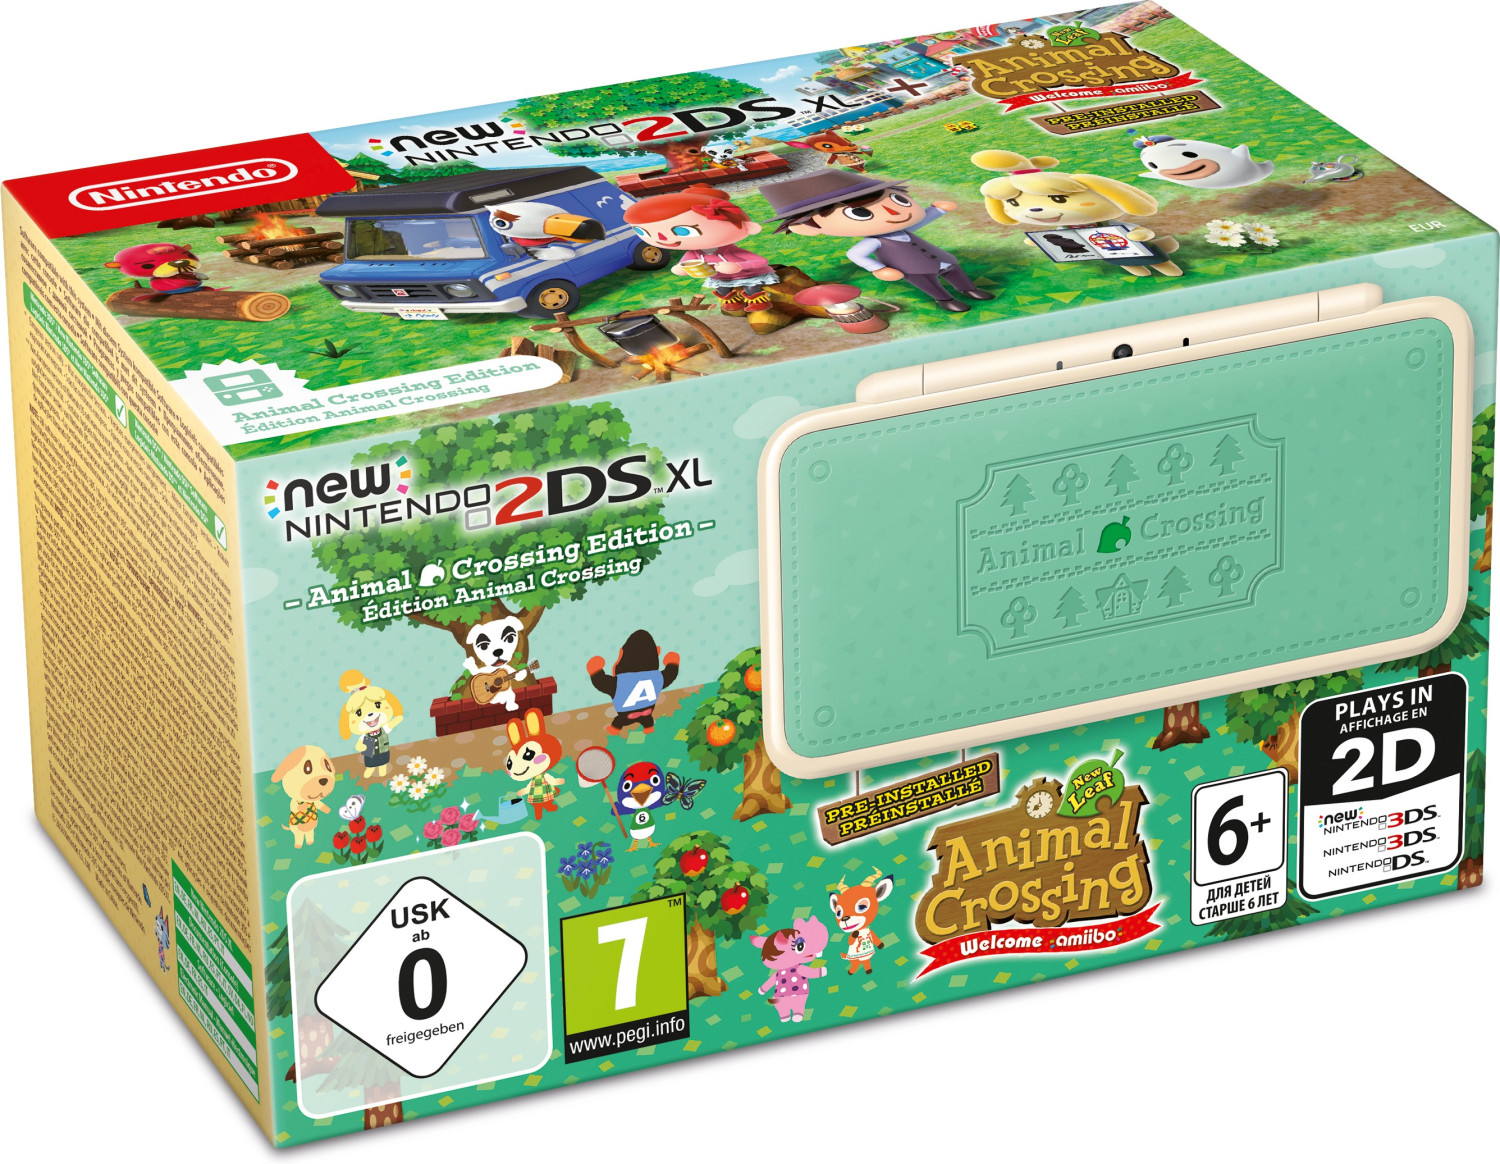 Nintendo New 2DS XL - Animal Crossing Edition + Animal Crossing: New Leaf - Welcome amiibo